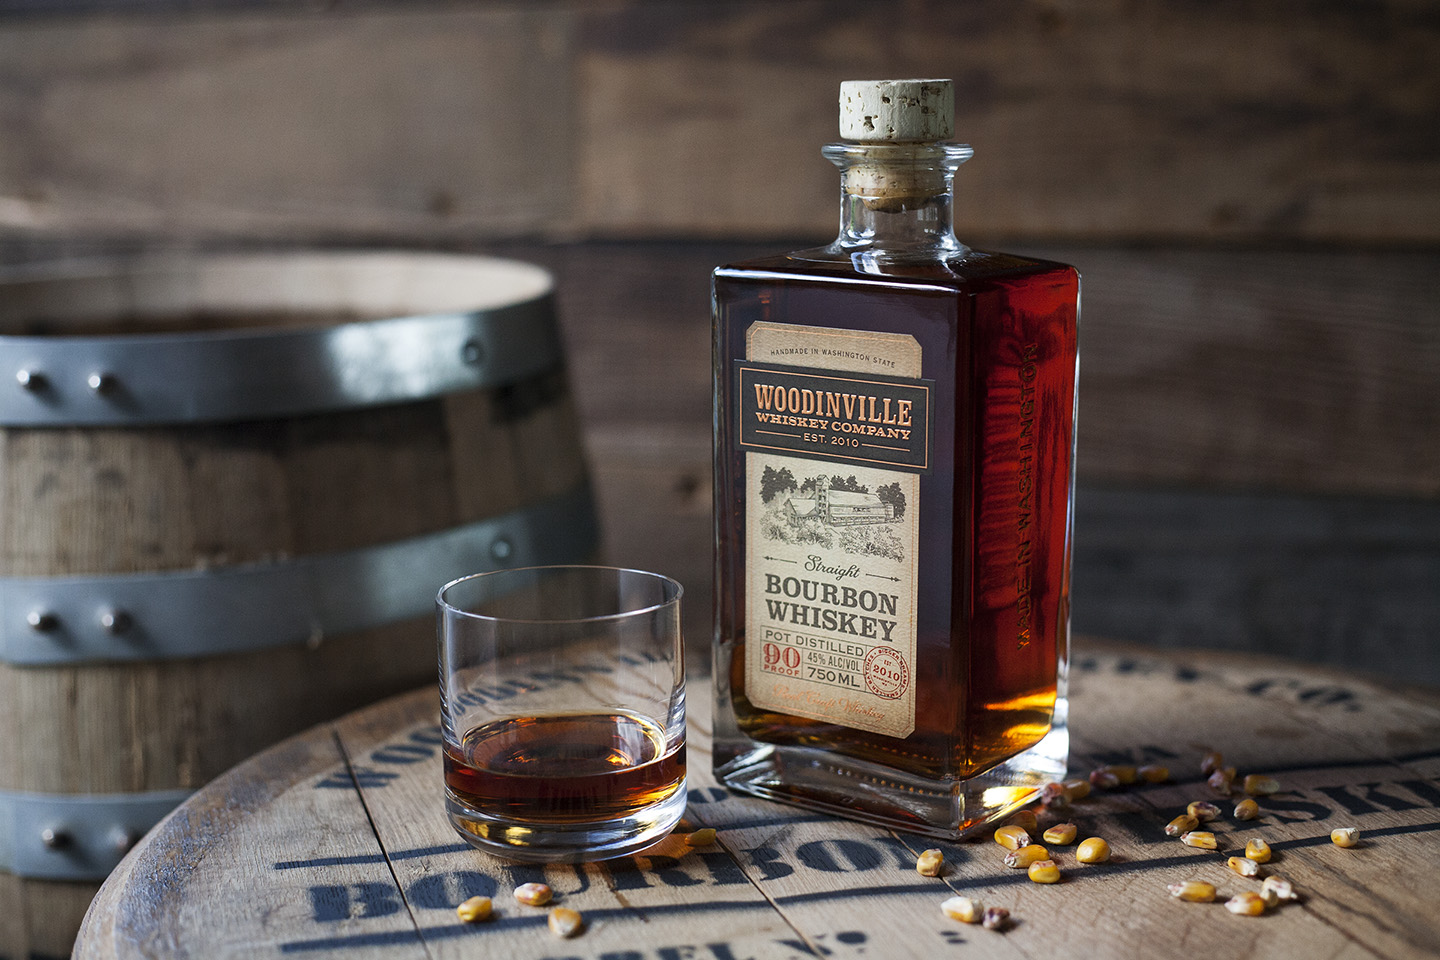 Woodinville Whiskey Bourbon